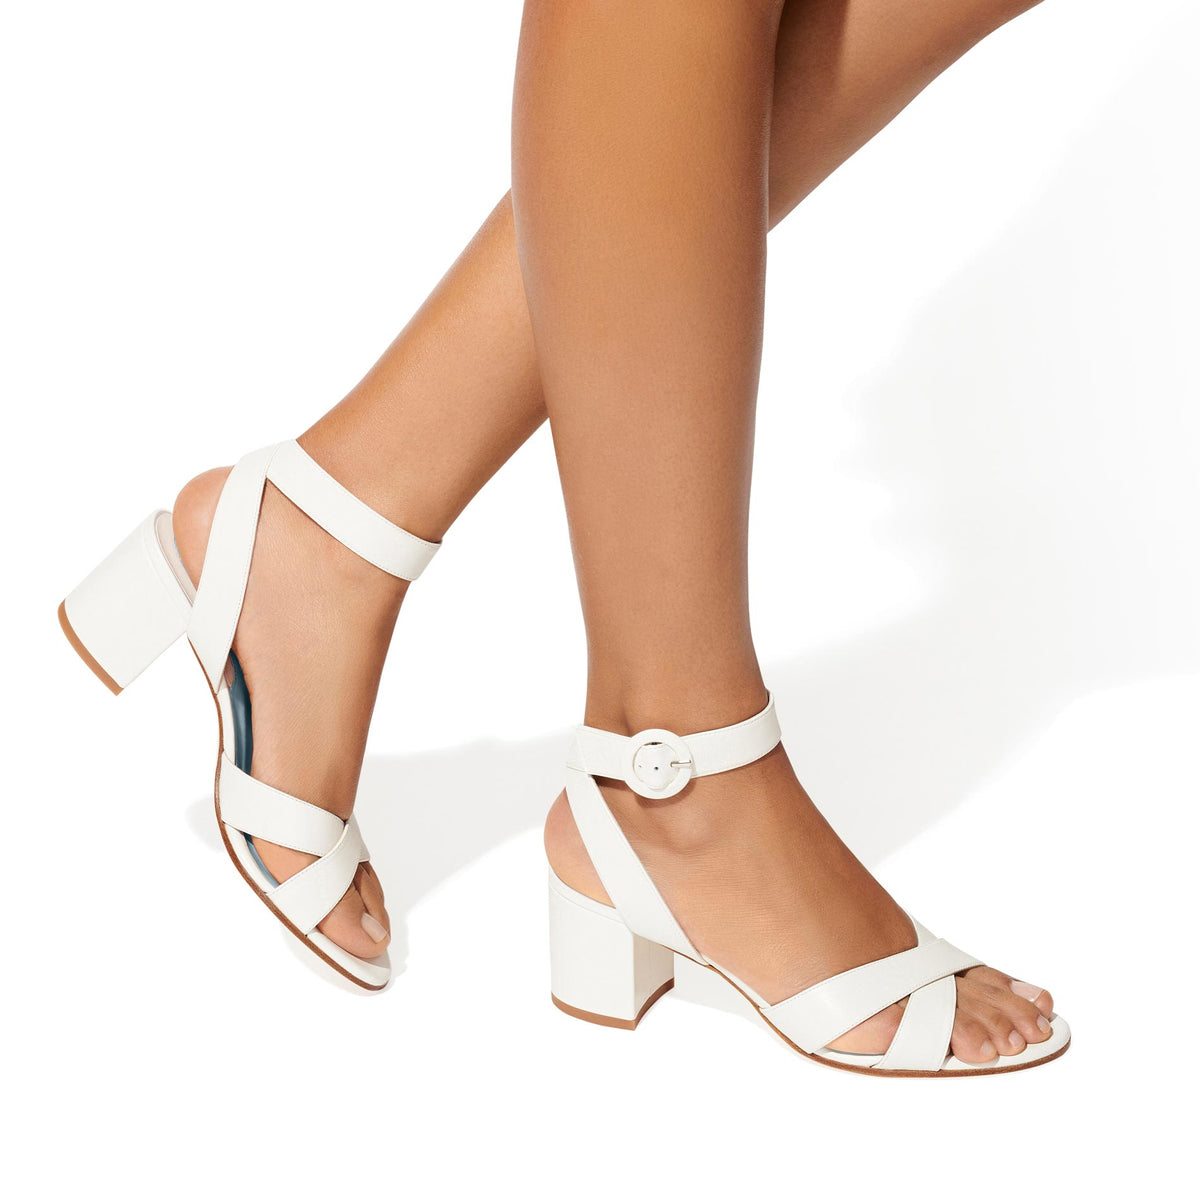 Made-To-Order Bridal: The City Sandal in Ivory Nappa